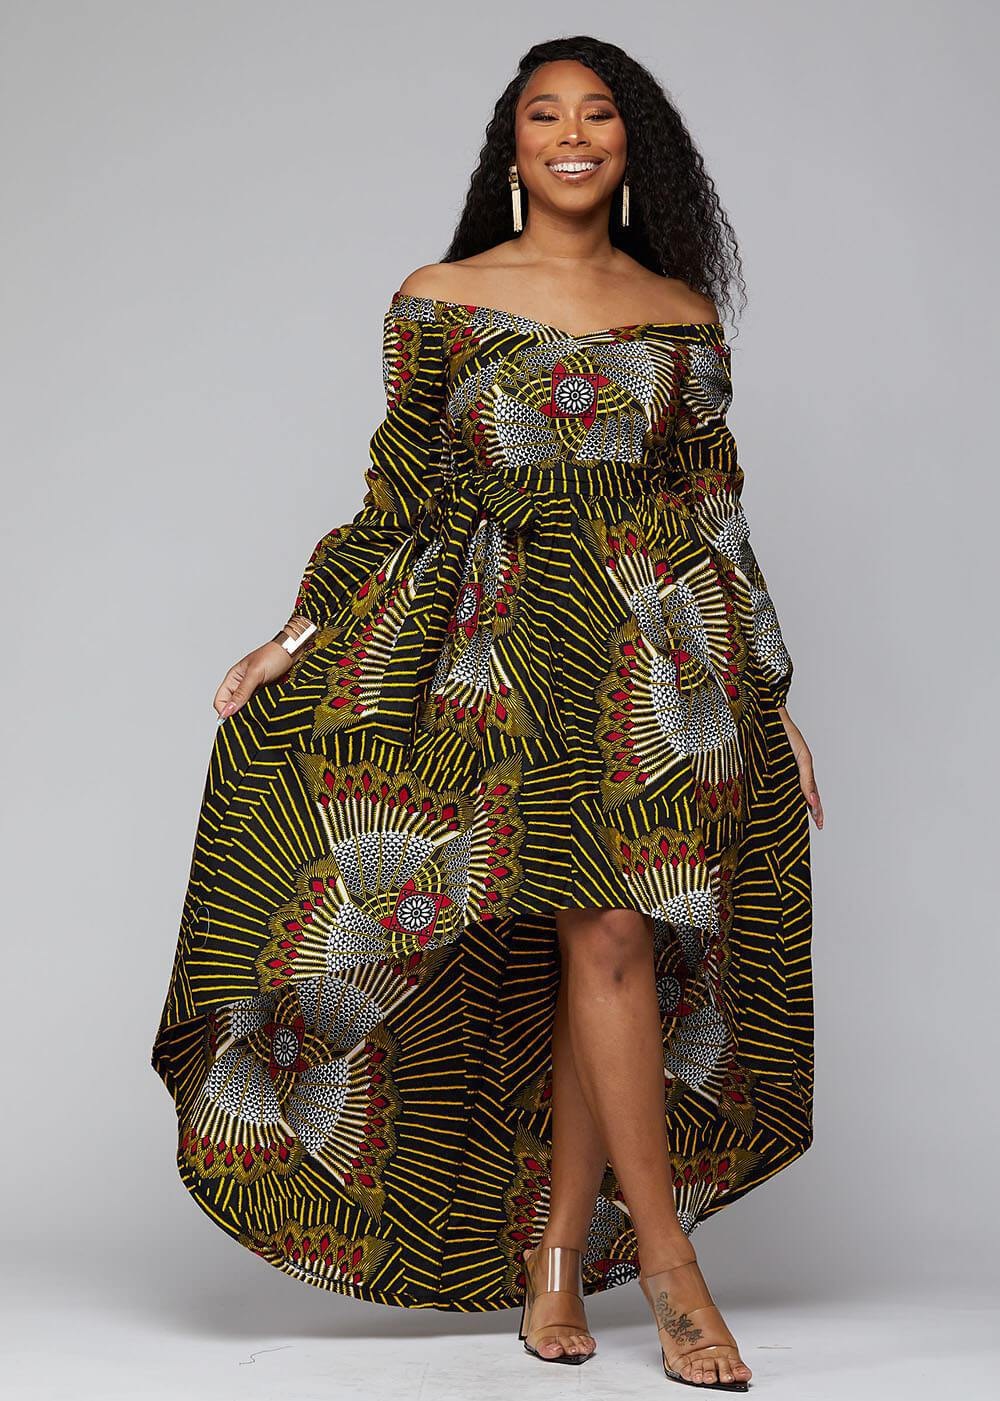 A showstopper dress from the house of D'Iyanu